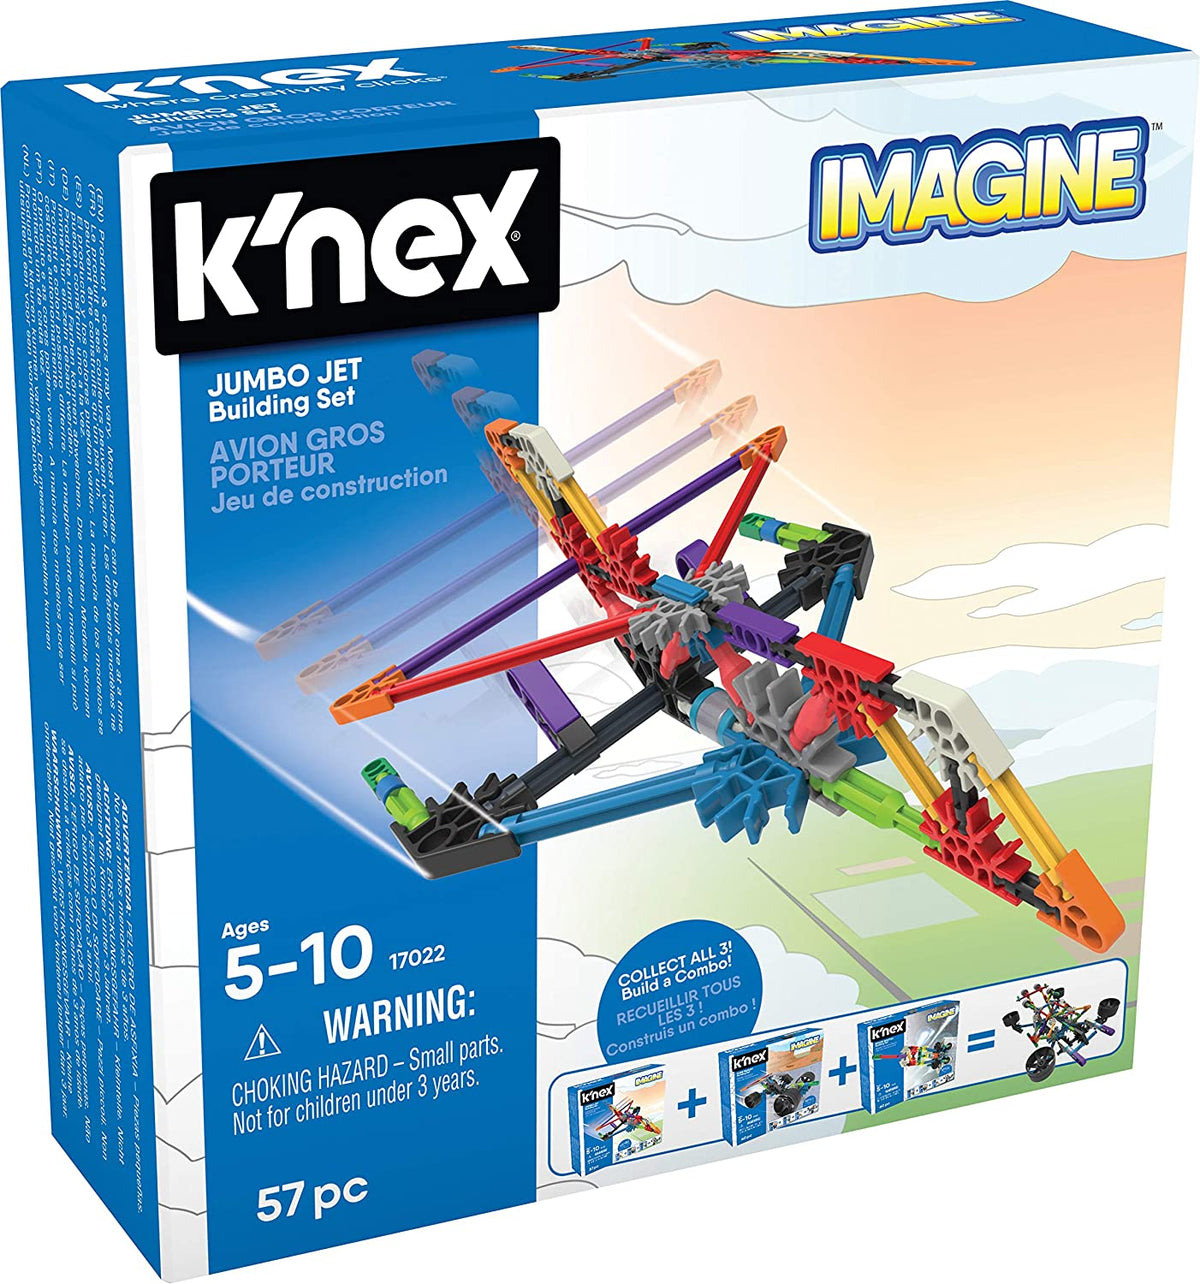 Knex  Imagine Jumbo Jet Set